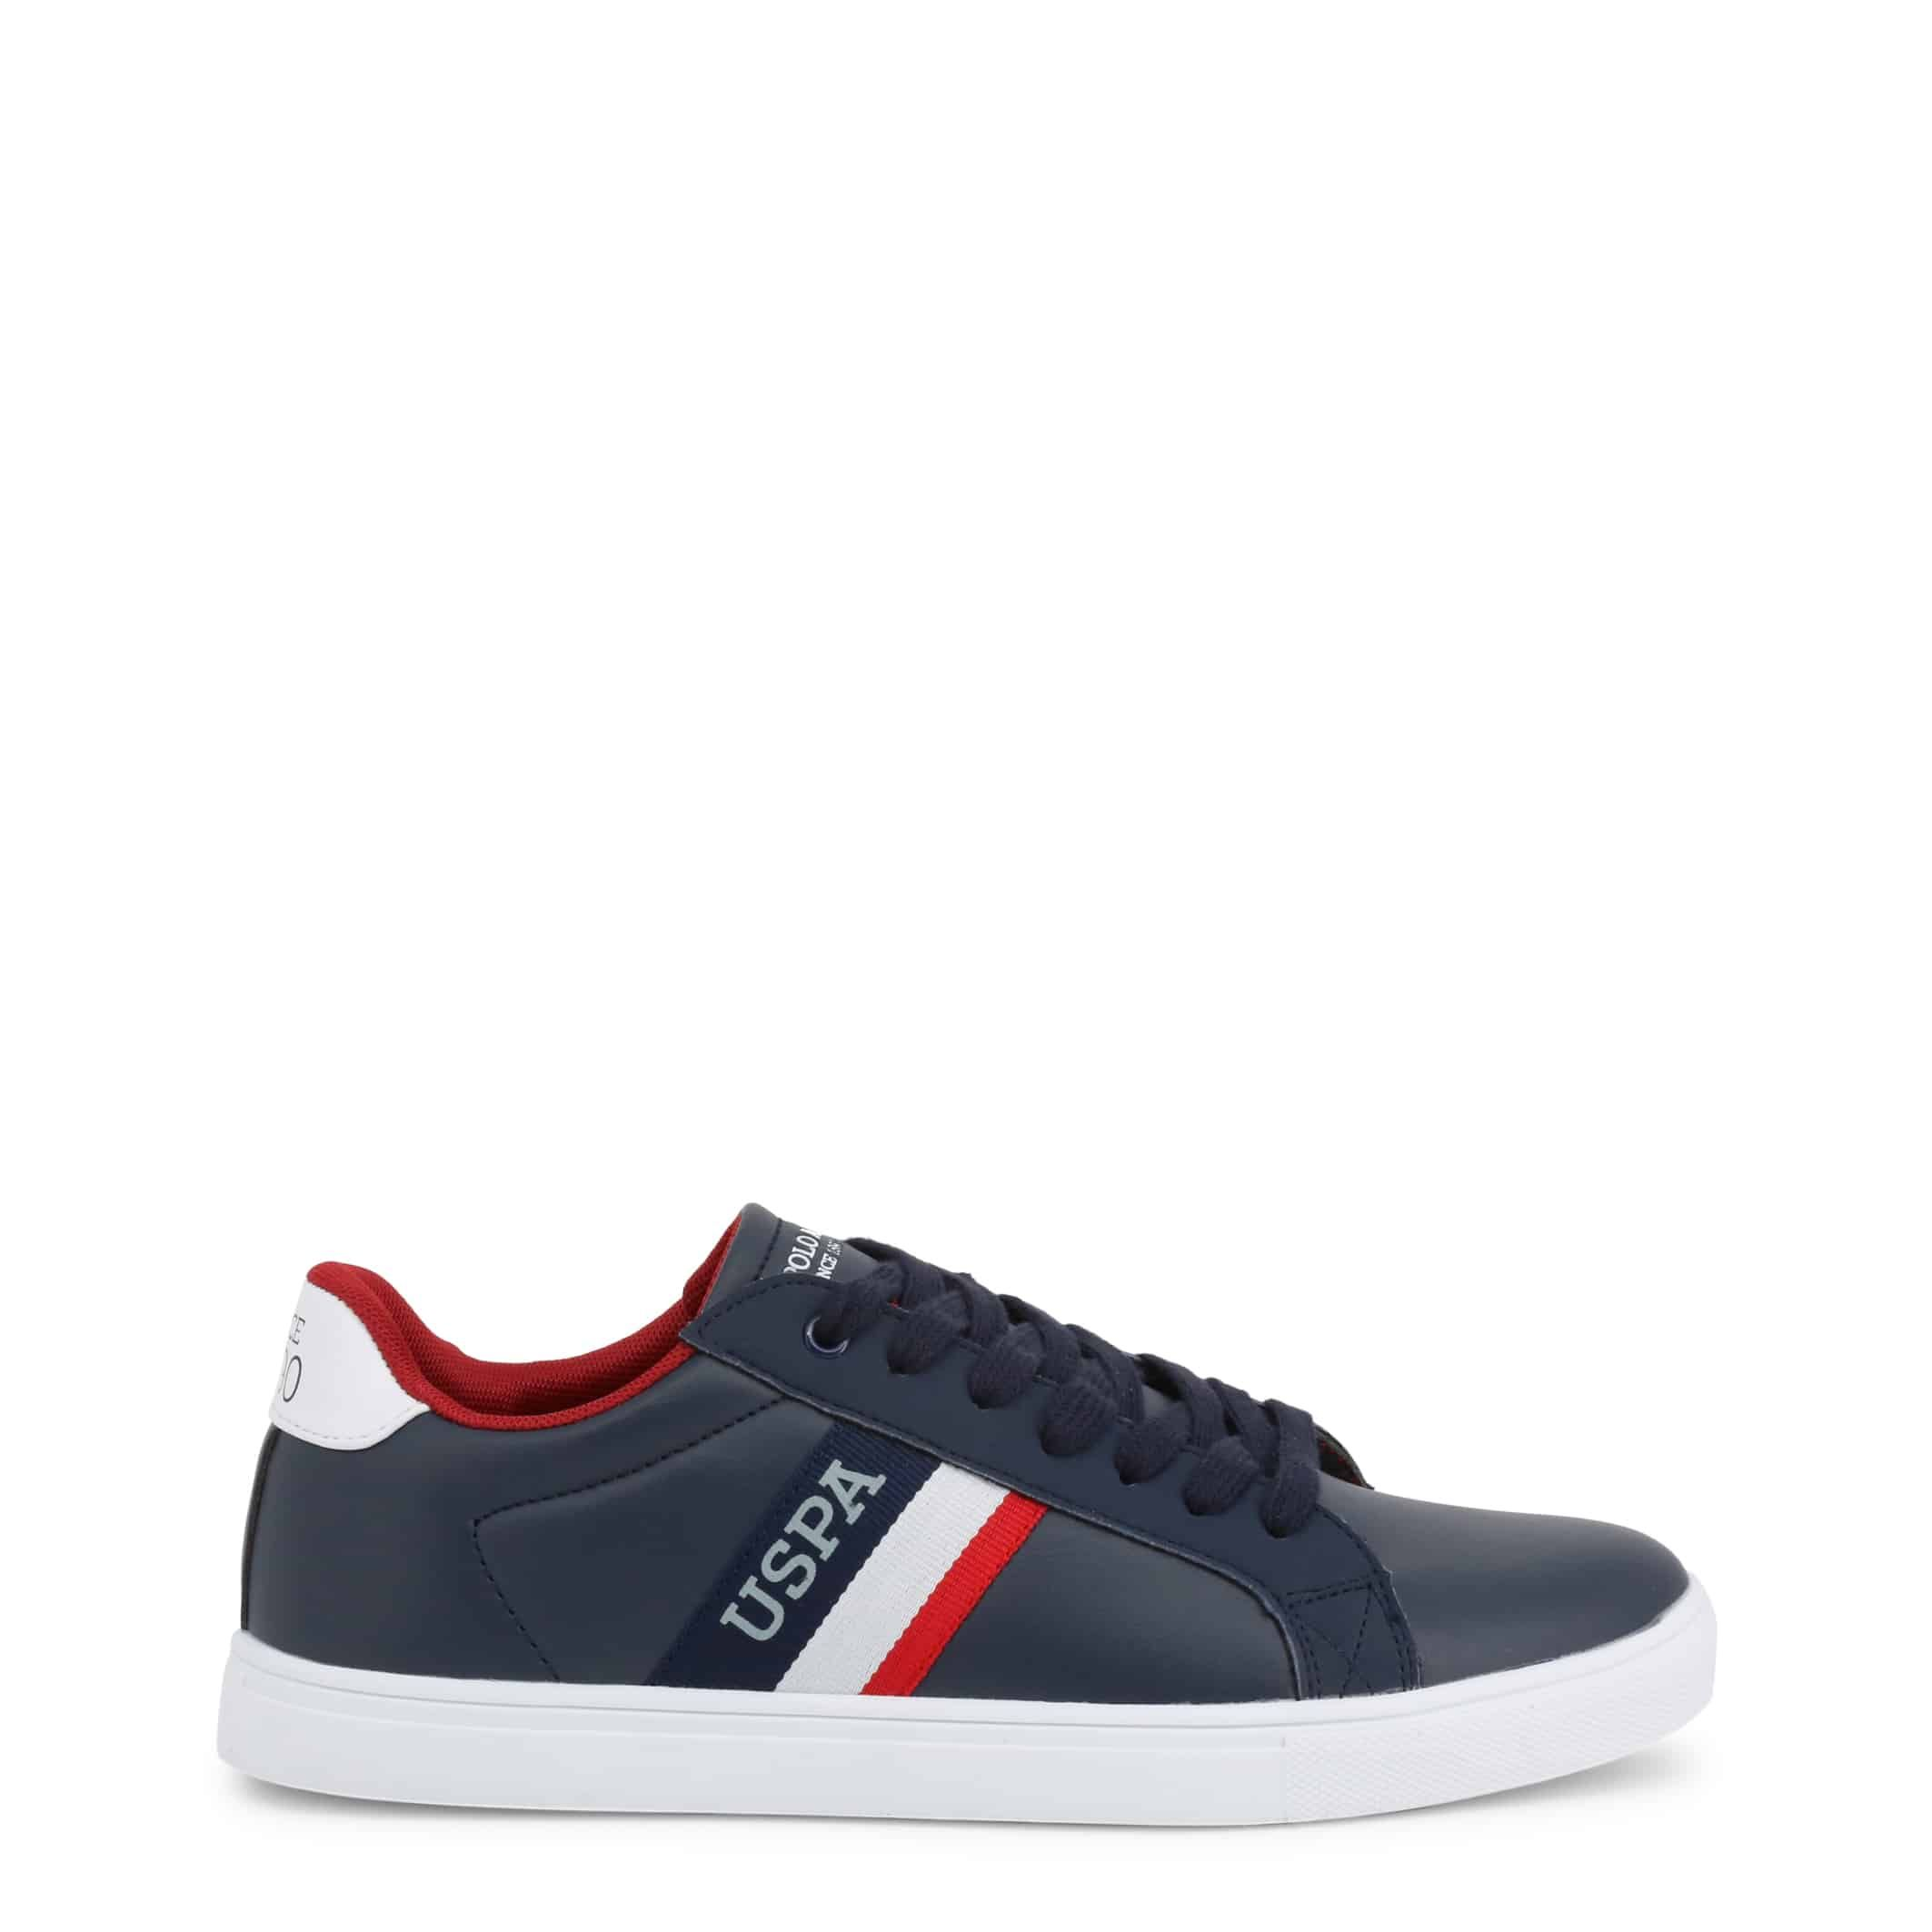 U.S. Polo Assn. – CURTY4264S0_Y1 – Azul